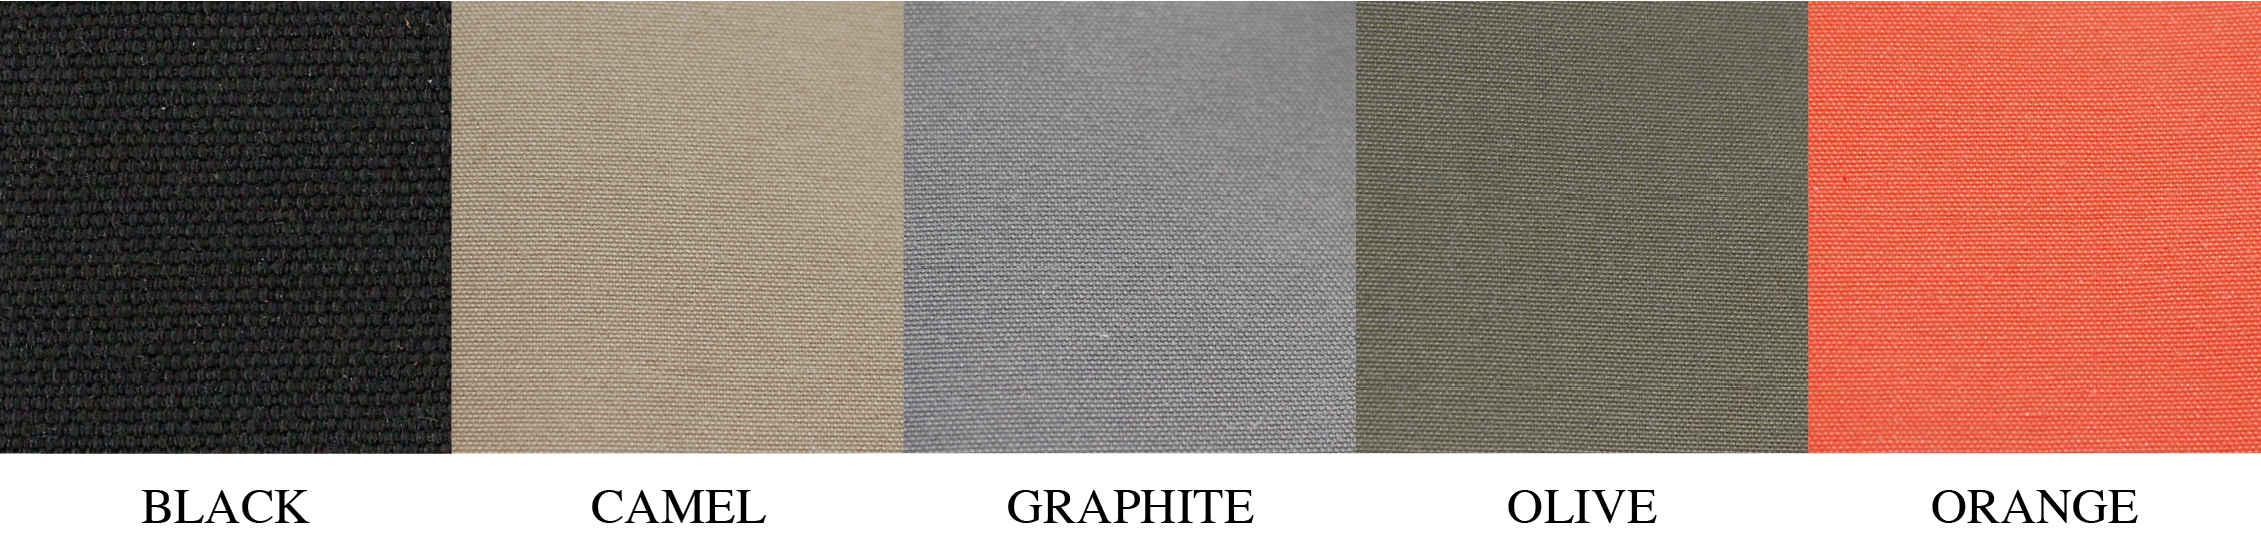 mahiout canvas materials